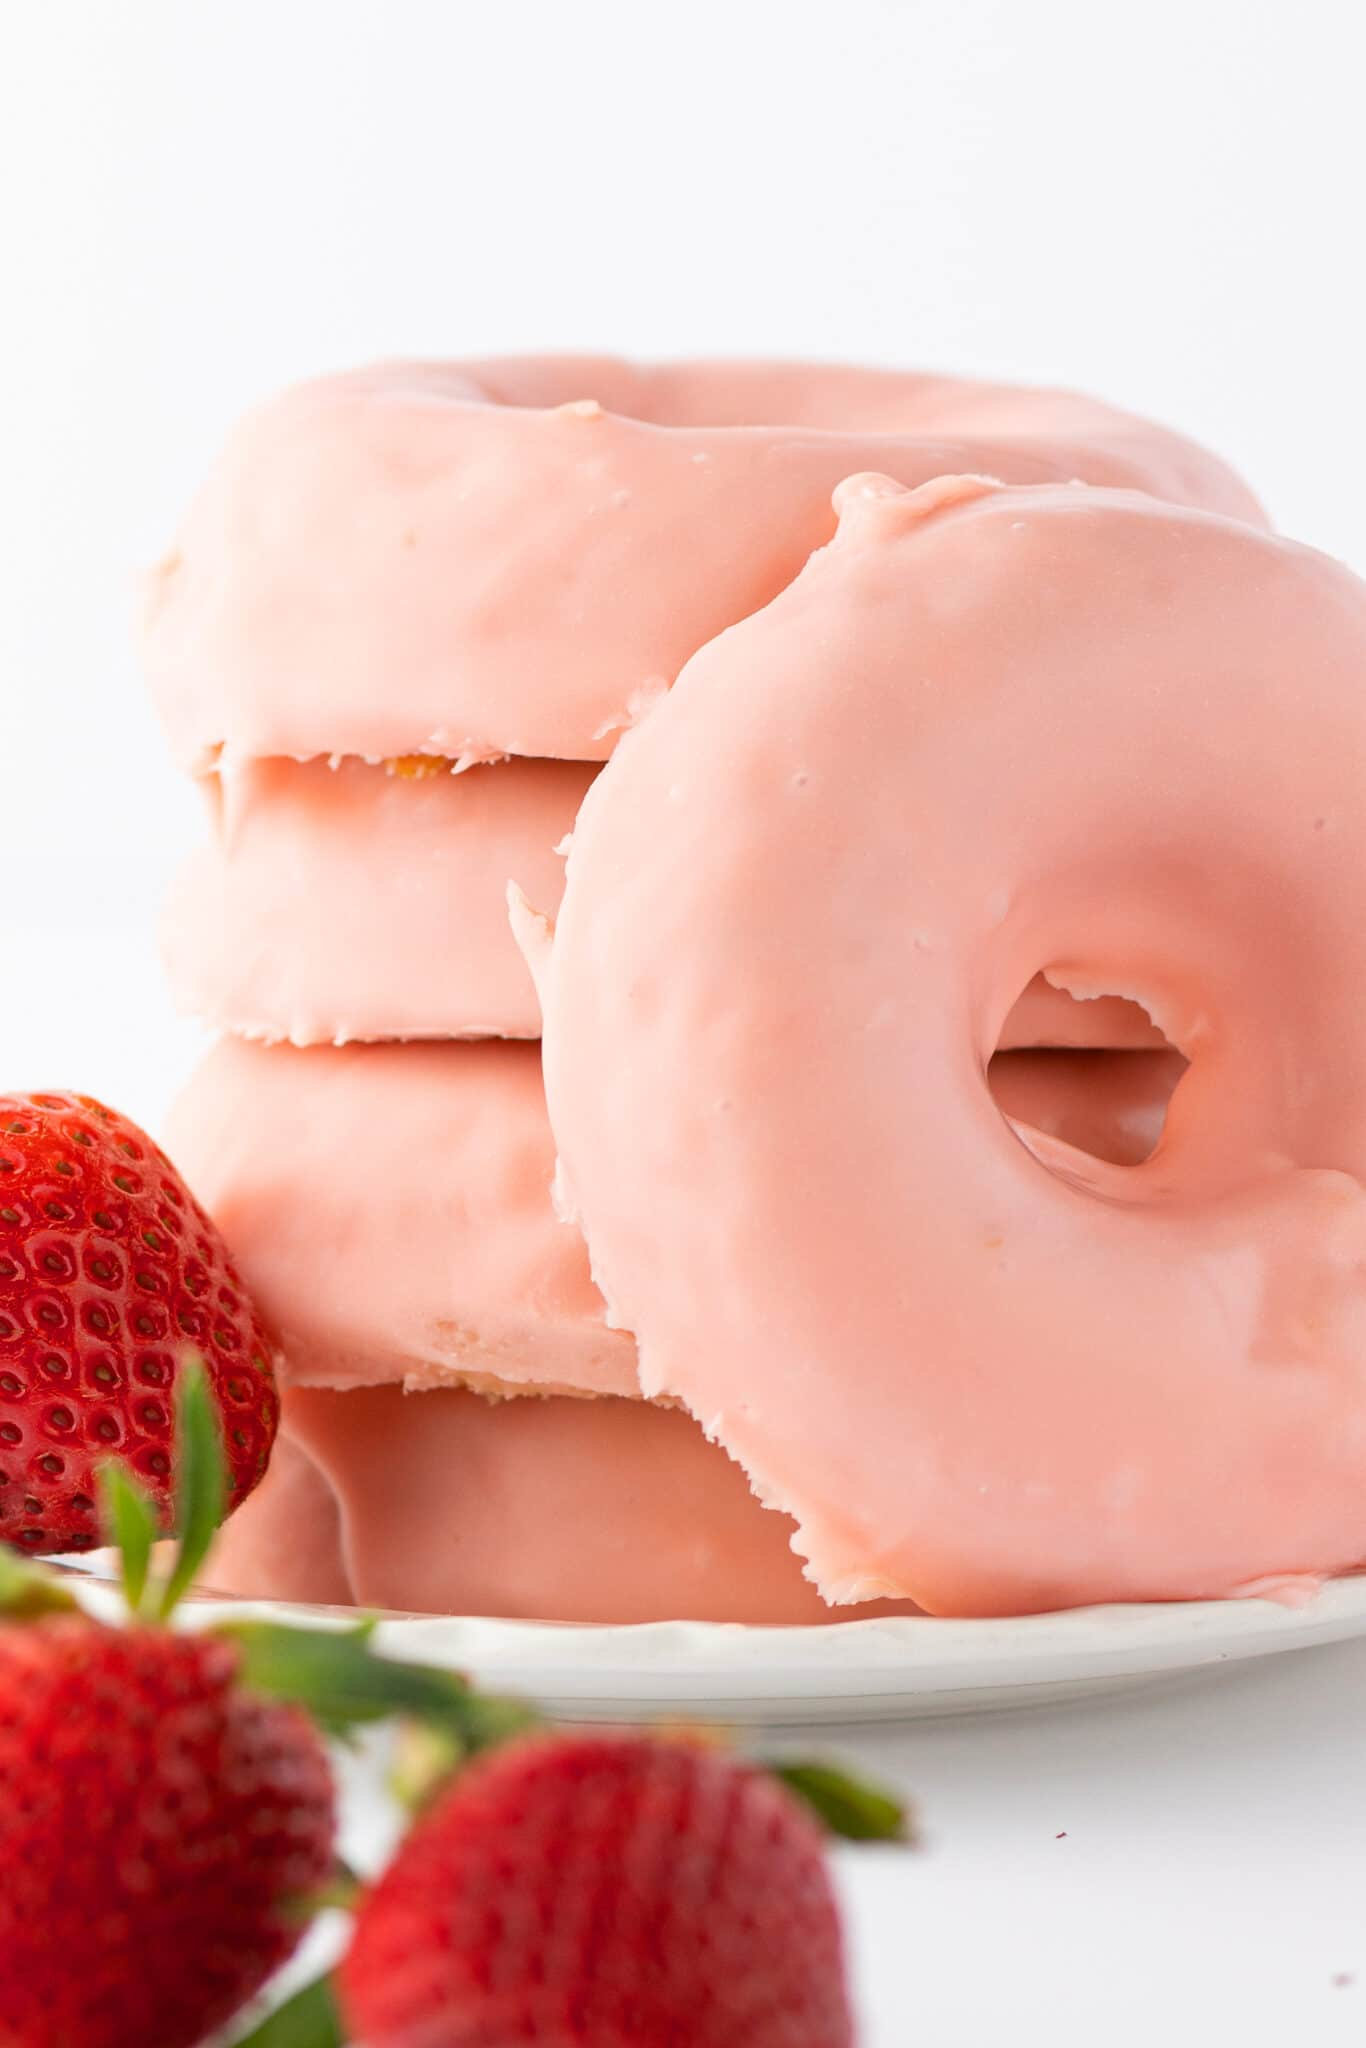 A stack of strawberry glazed donuts on a white plate with fresh ripe red berries scattered around the tabletop.